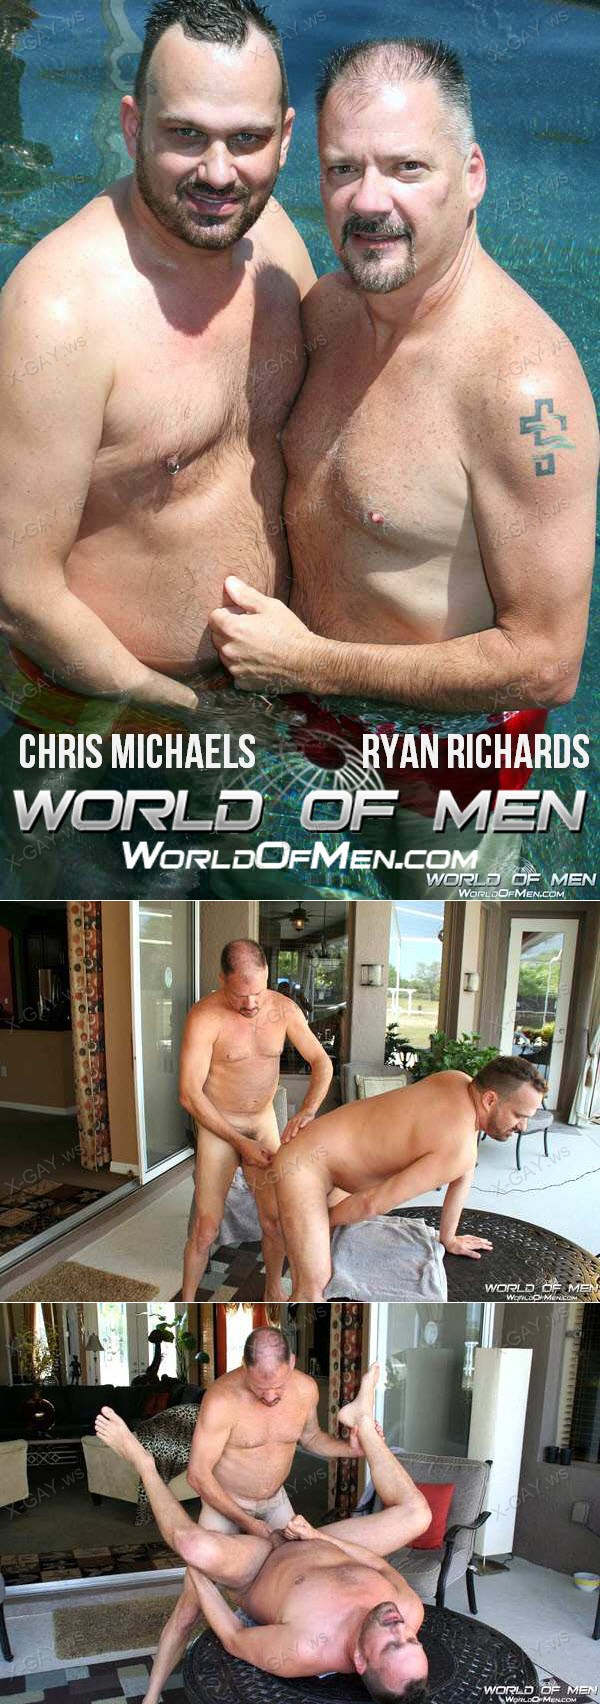 WorldOfMen: Chris Michaels, Ryan Richards